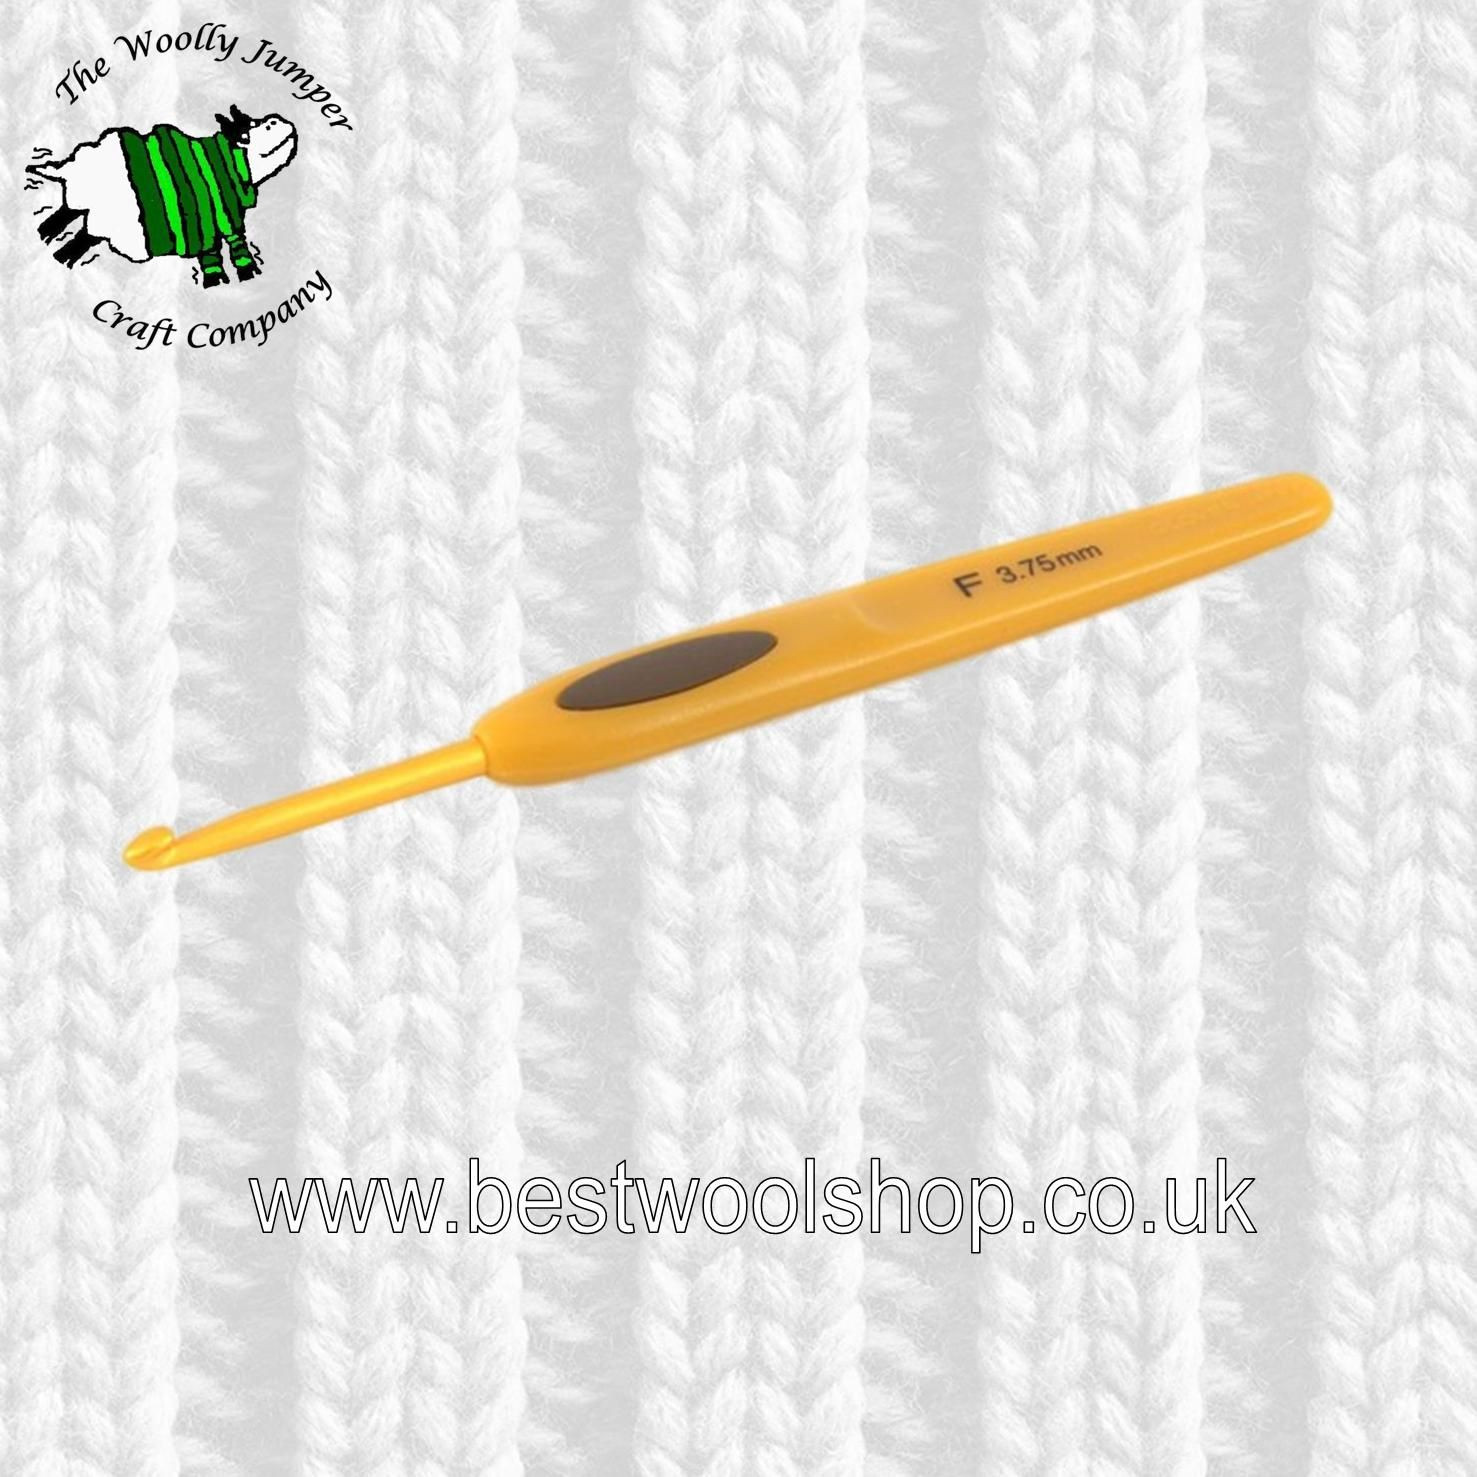 Elegant 3 75 Mm Clover soft touch Crochet Hook F Clover soft touch Crochet Hooks Of Inspirational Clover soft touch Crochet Hook 13cm Clover soft touch Crochet Hooks